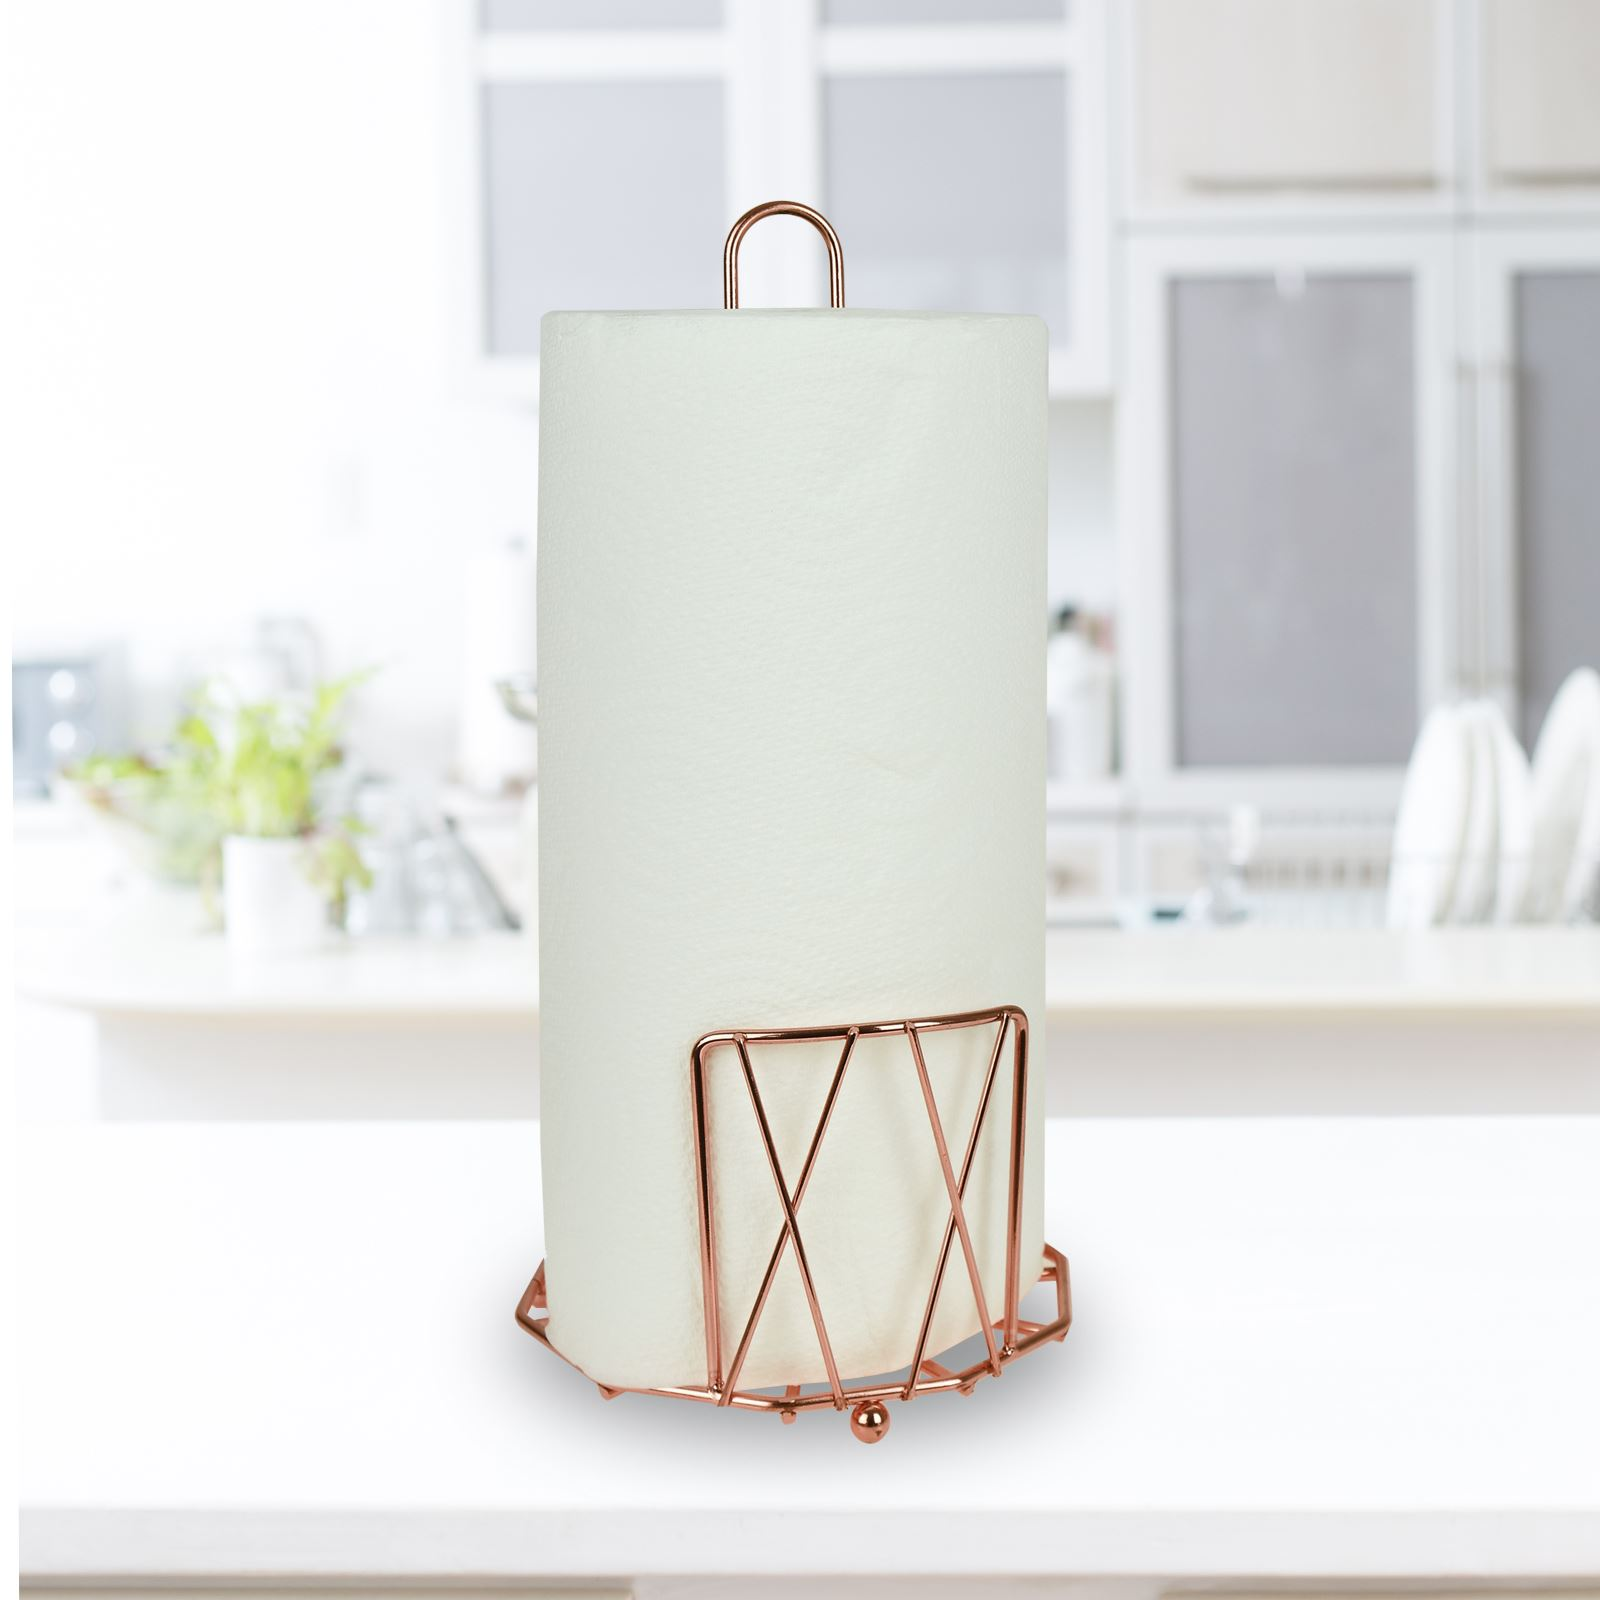 copper kitchen utensil holder aid coffee makers accessory fruit basket roll